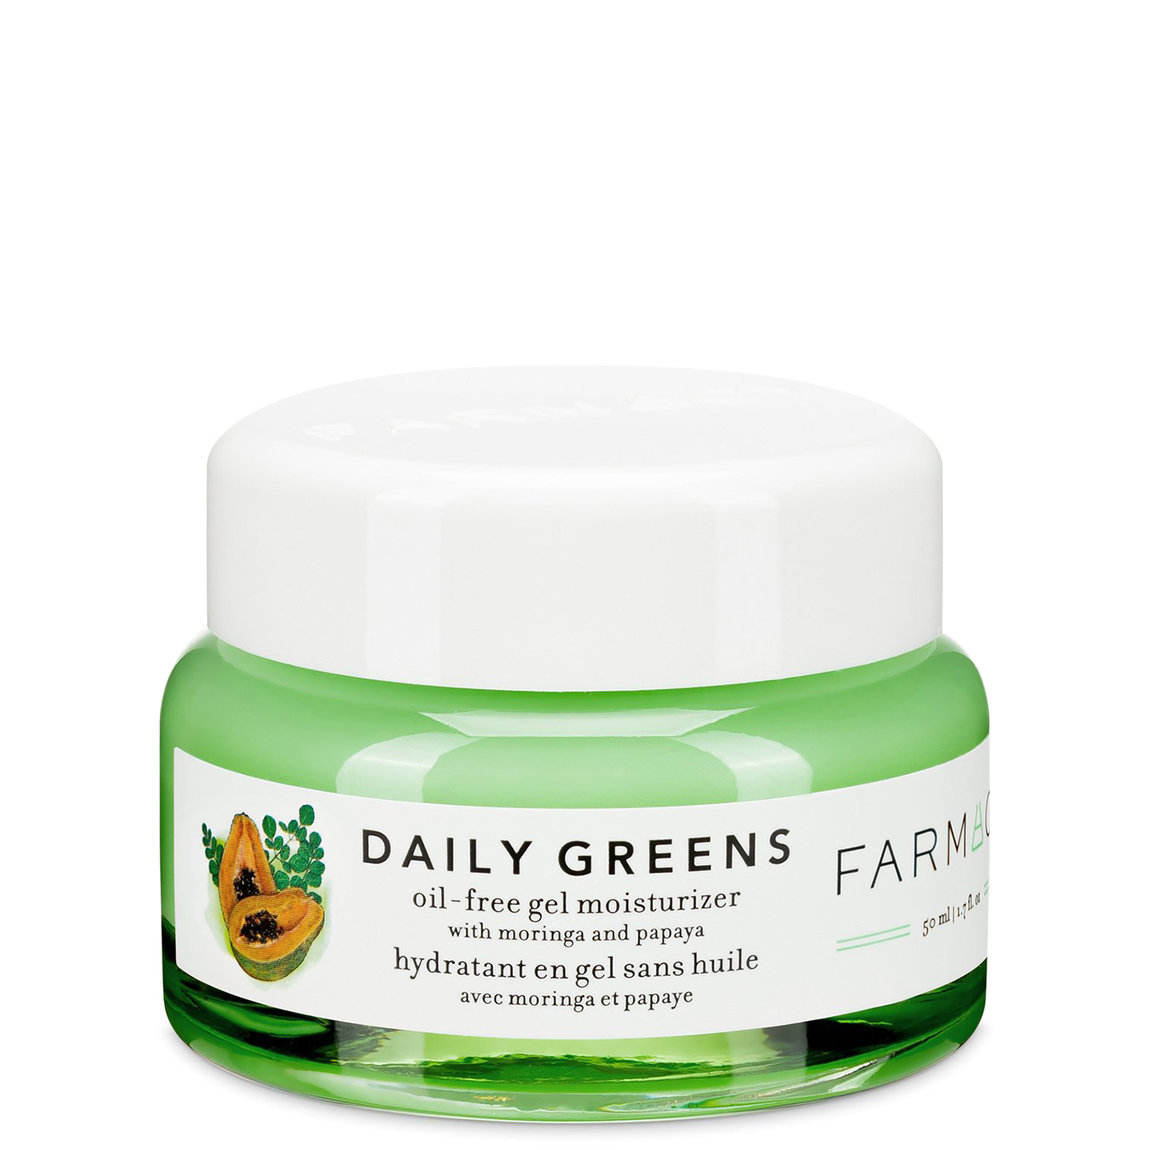 Farmacy Daily Greens Oil-Free Gel Moisturizer alternative view 1 - product swatch.